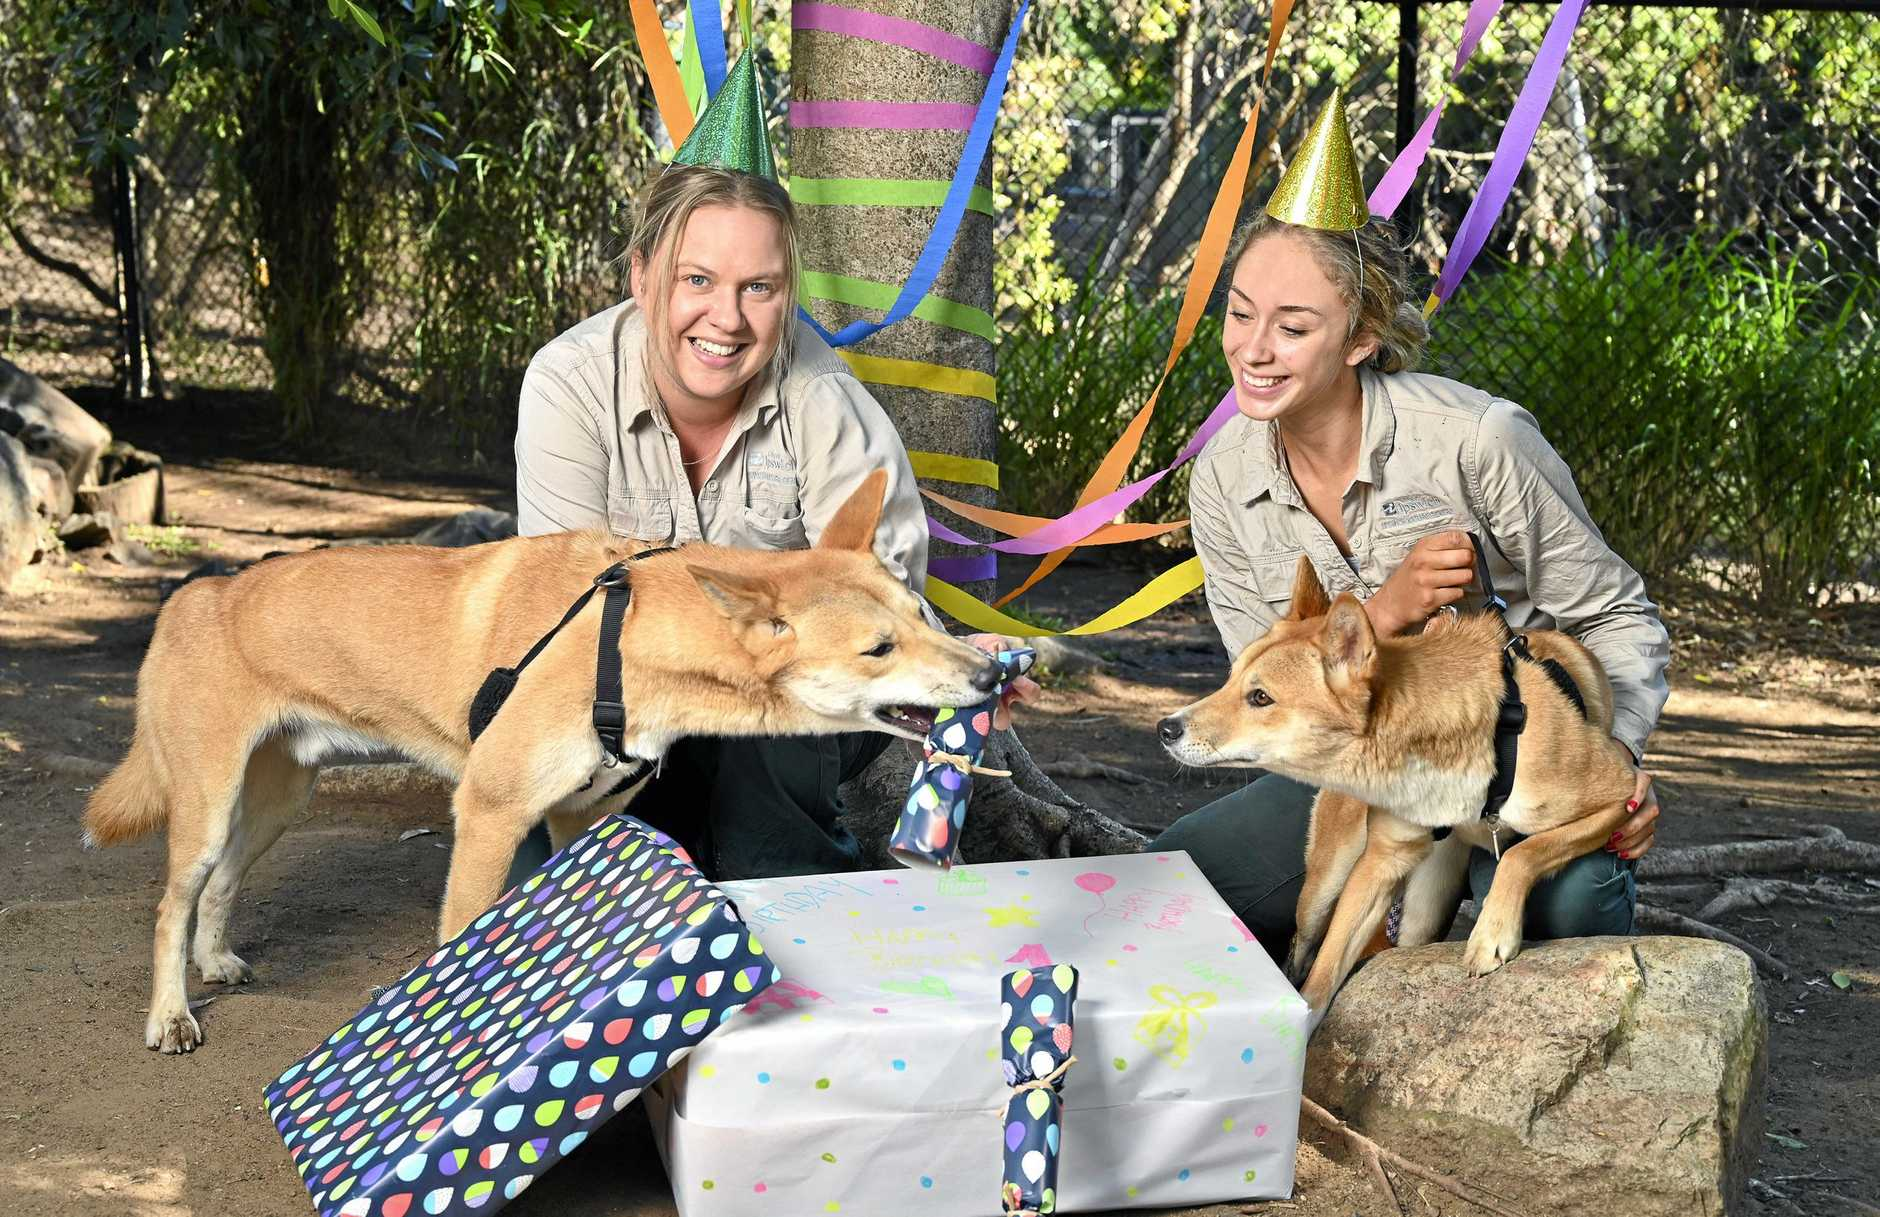 HAVE YOUR SAY: Nicole Richards and Paige Wilson of Ipswich Nature Centre with dingos Lola and Moose.